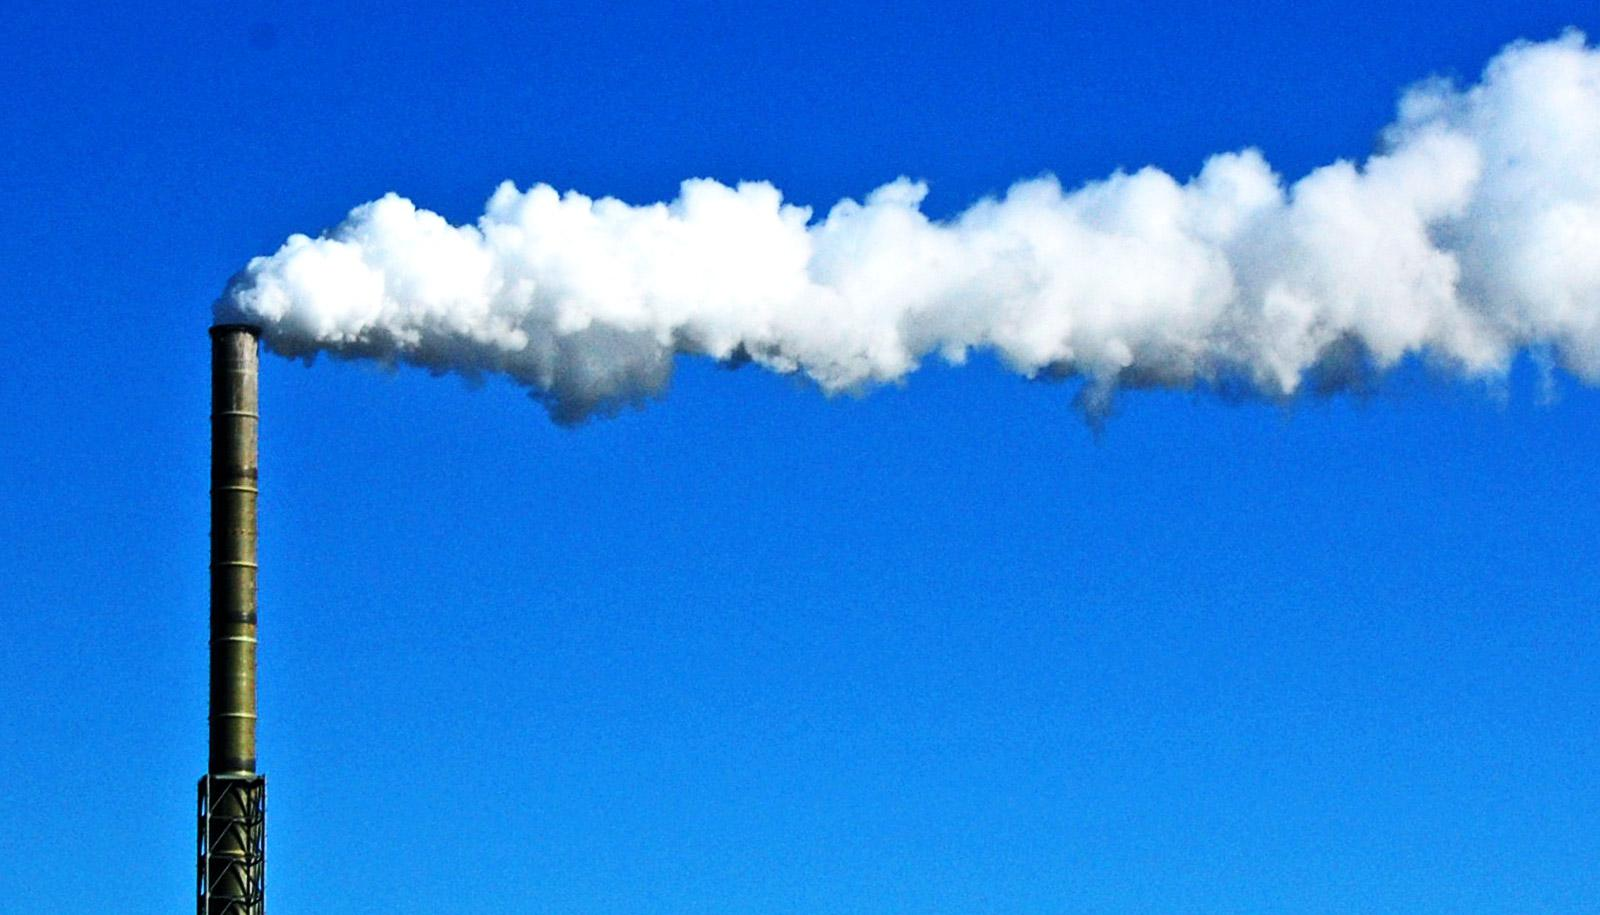 smoke stack (co2 emissions concept)